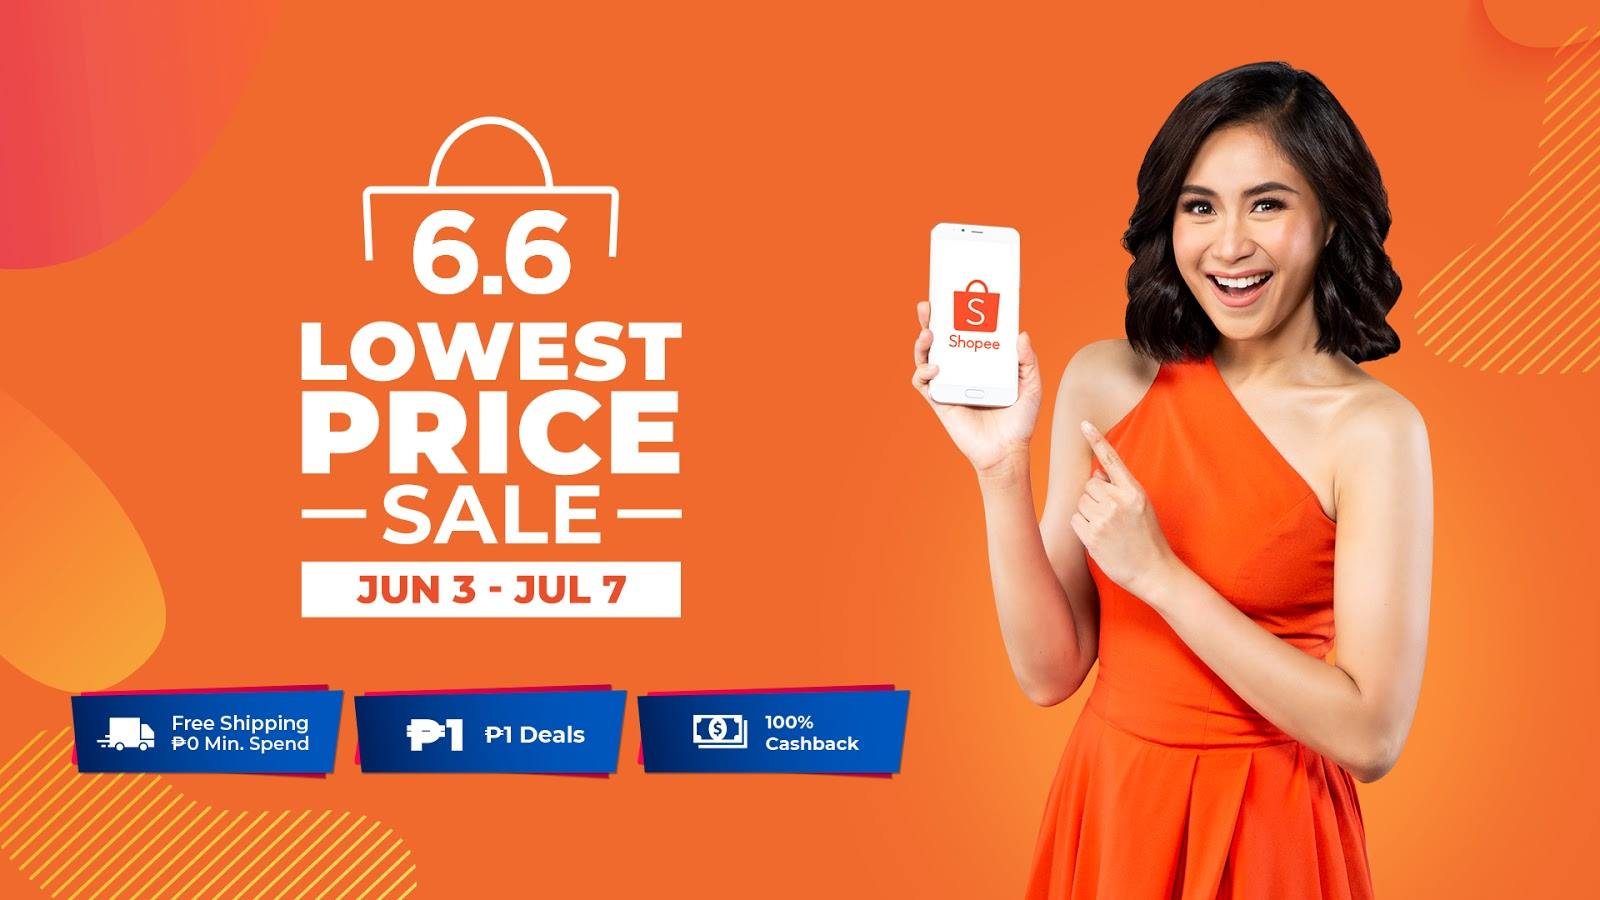 Shopee Reveals Sarah Geronimo as New Brand Ambassador in time for Shopee 6.6 – 7.7 Lowest Price Sale